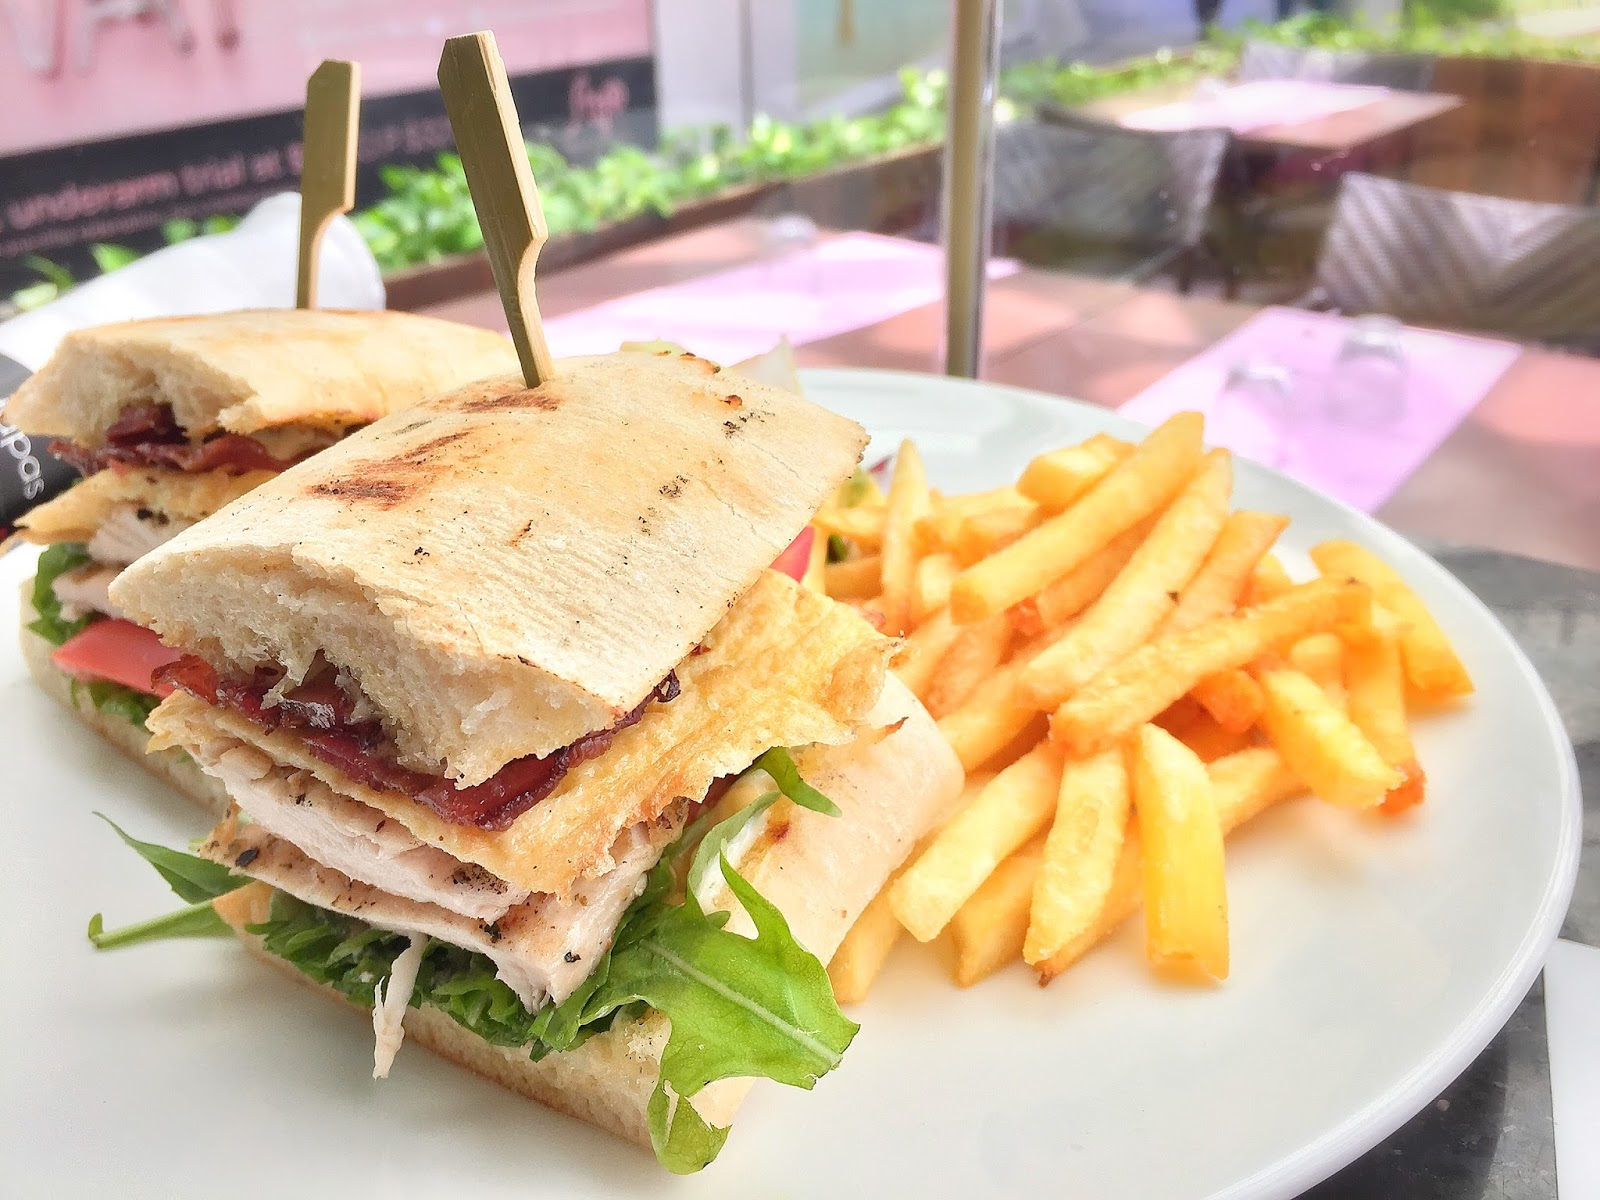 Salt Tapas and Bar - Club Sandwich with House Salad and Fries